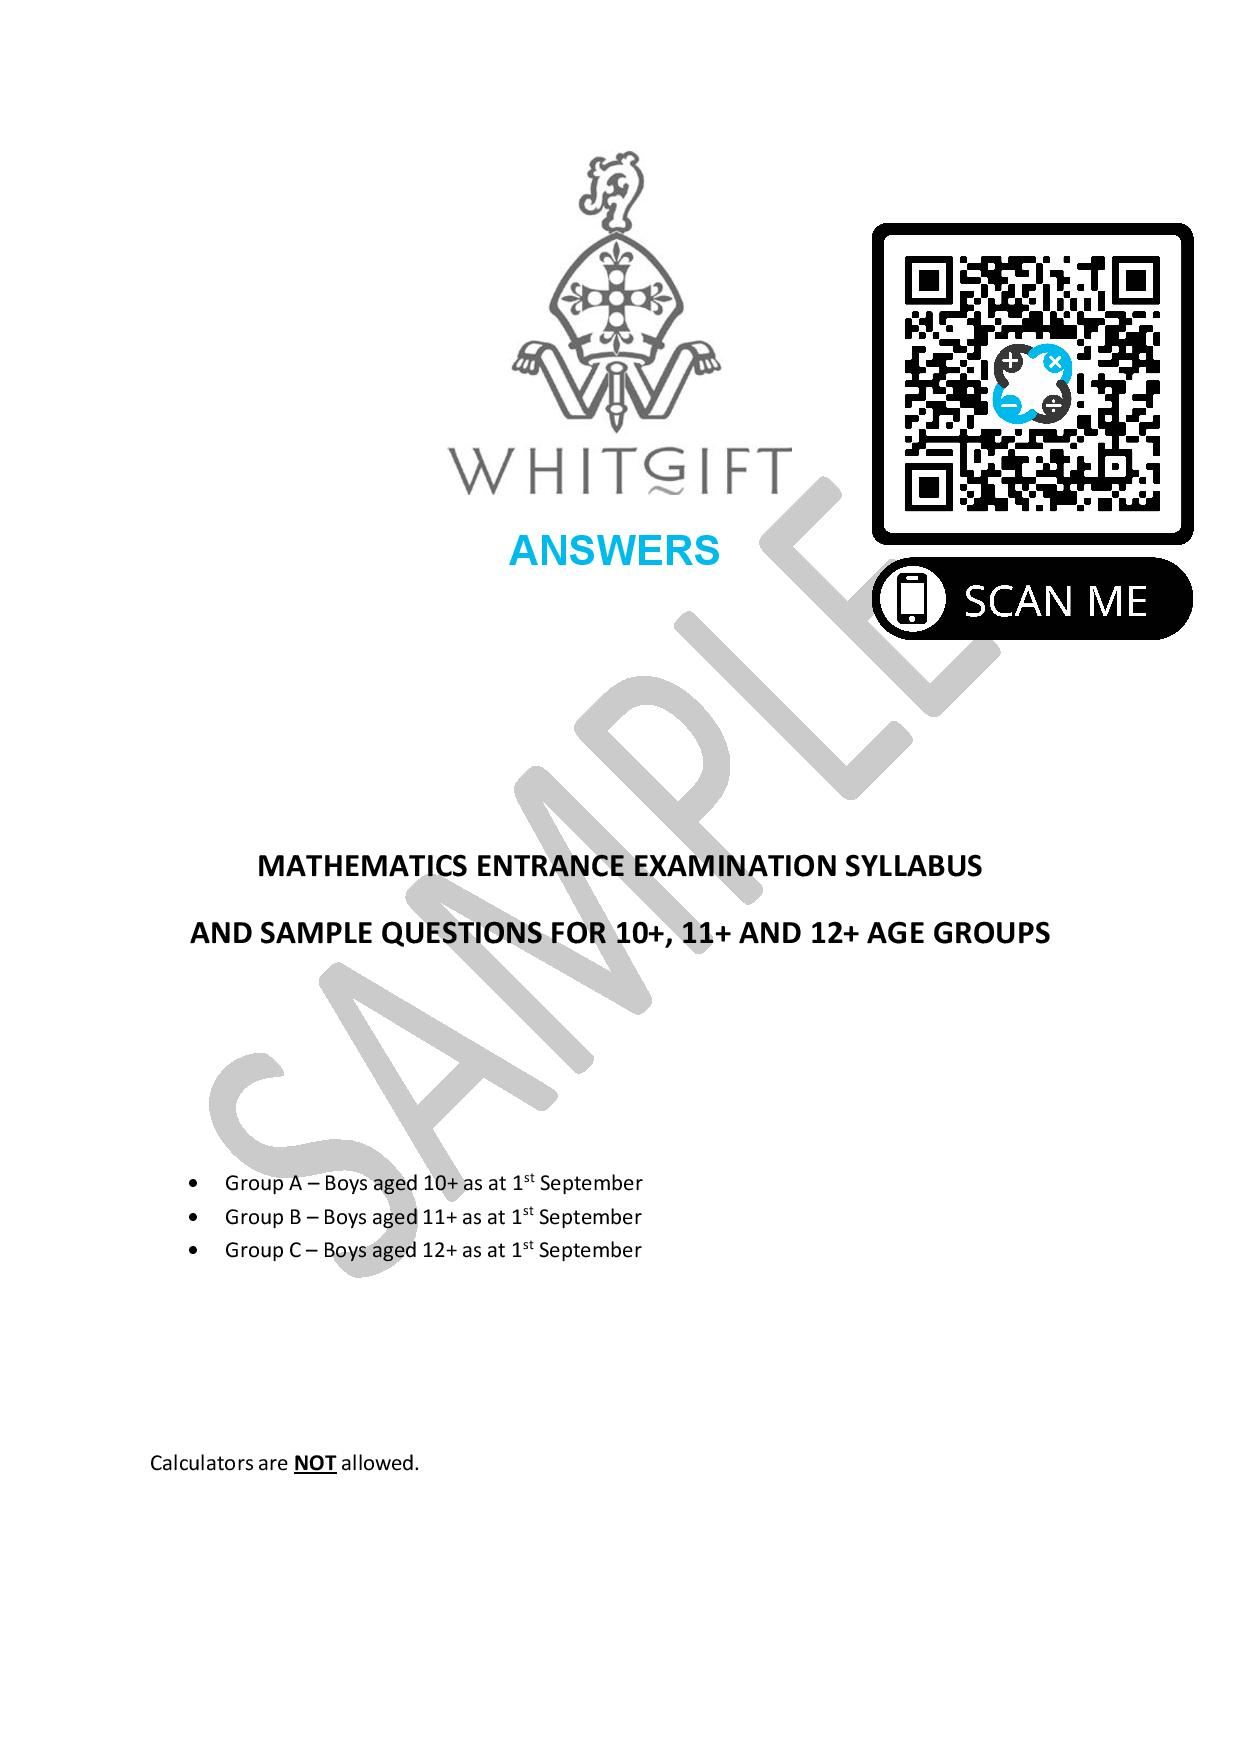 White Gift School MATHEMATICS ENTRANCE EXAMINATION SYLLABUS AND SAMPLE QUESTIONS FOR 10 11 AND 12 AGE GROUPS Answers Paper 1 page 001